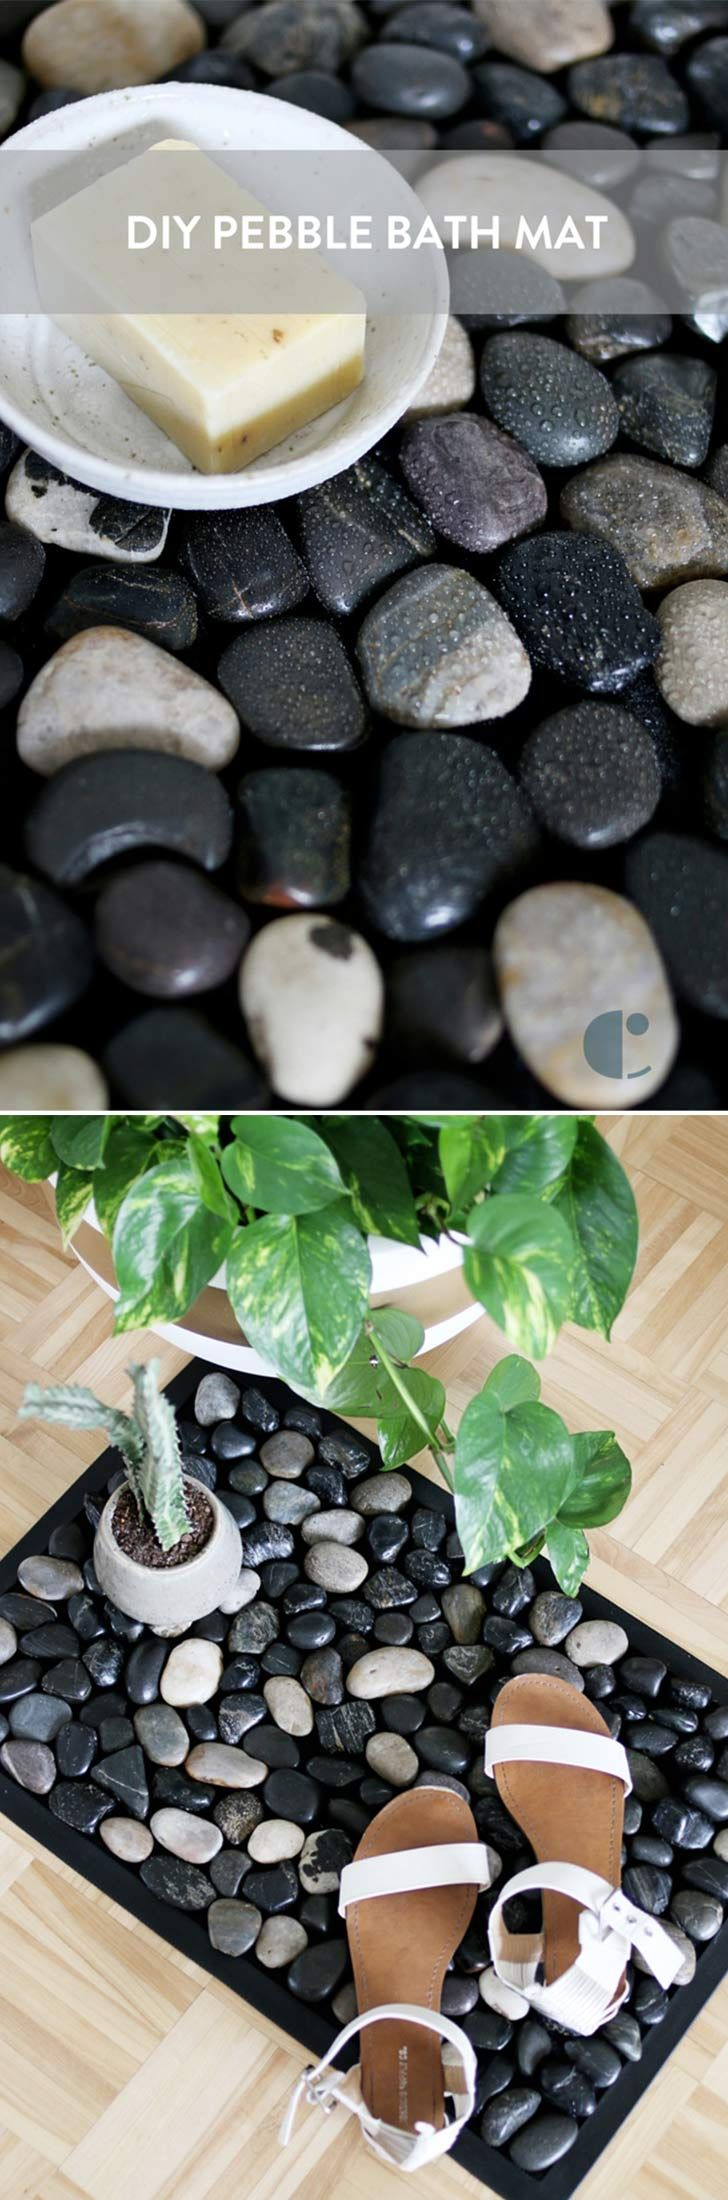 DIY pebble bath mat. Click on image to see more DIY ideas and crafts for your home.